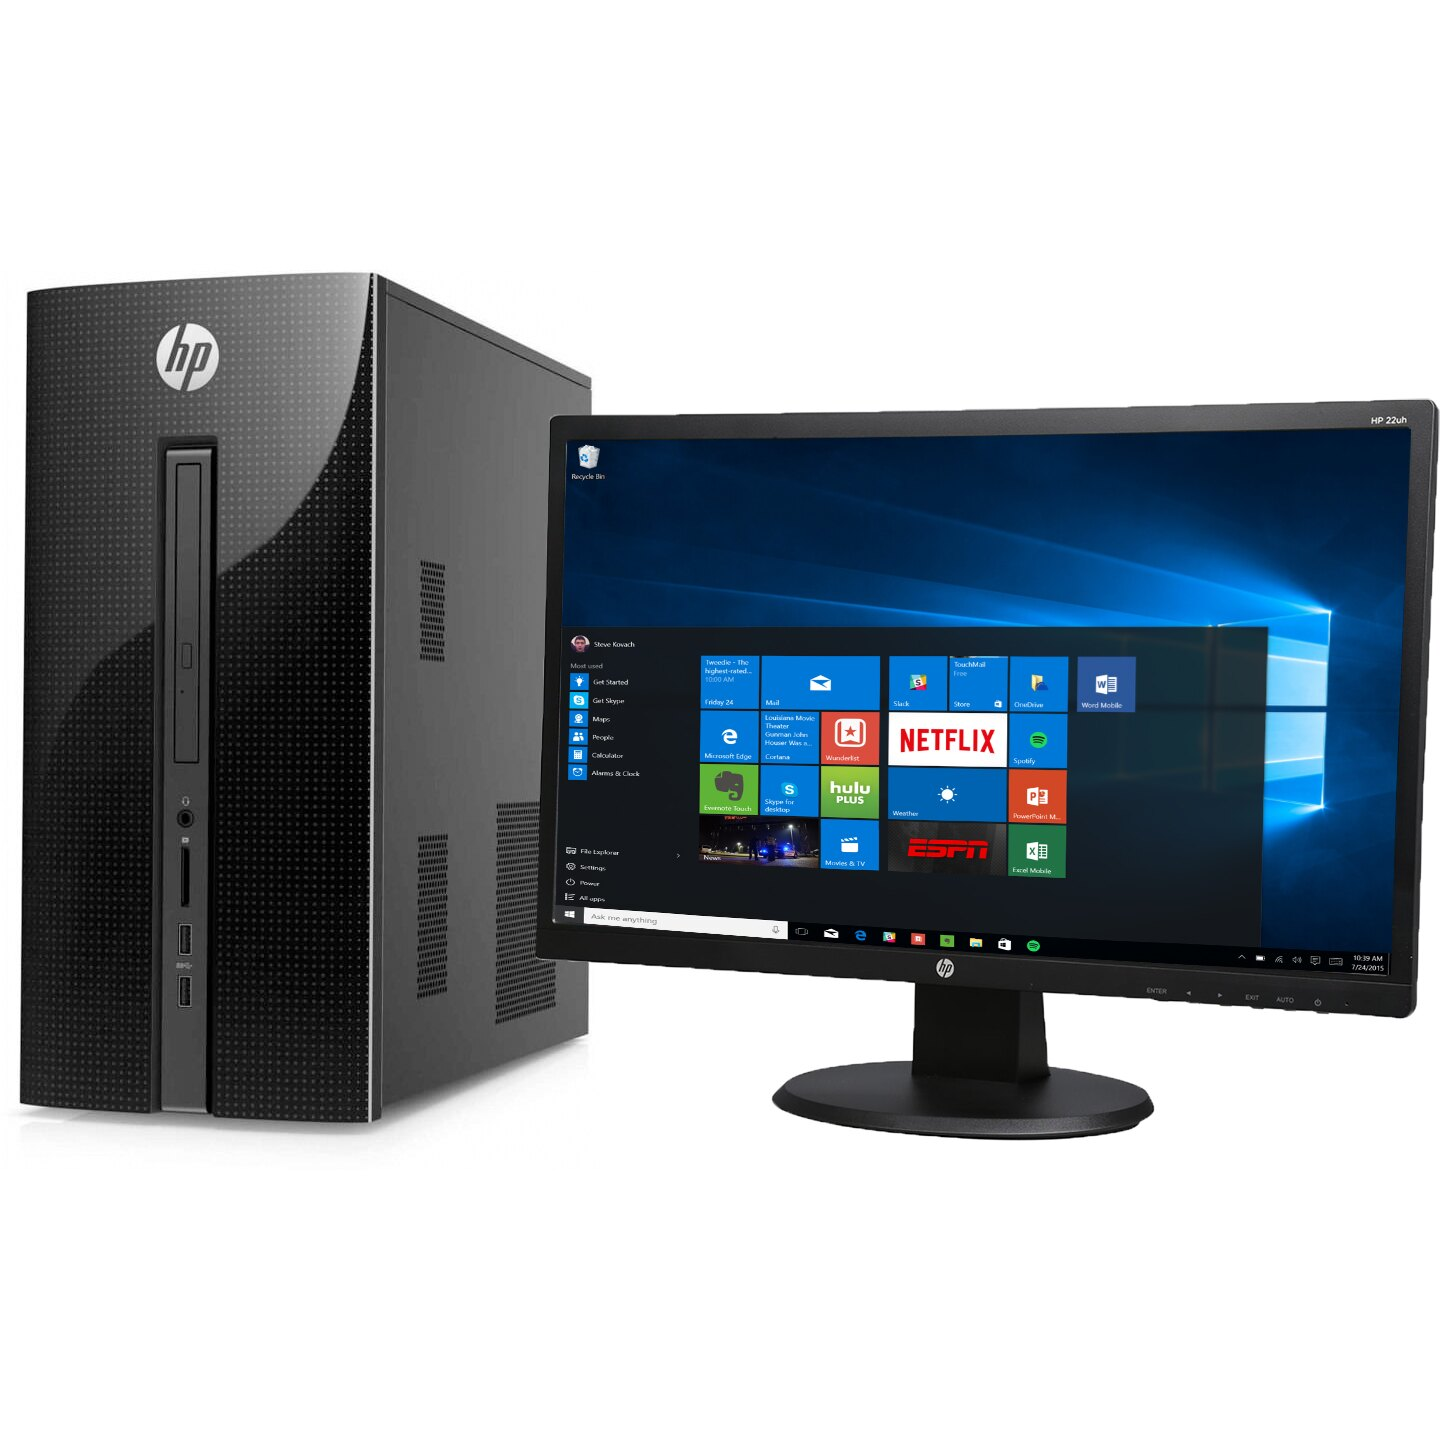 "HP 251-A123WB Pentium J2900 Quad-Core 2.41GHz 4GB 1TB Mini-Tower & 21.5"" Monitor 0"